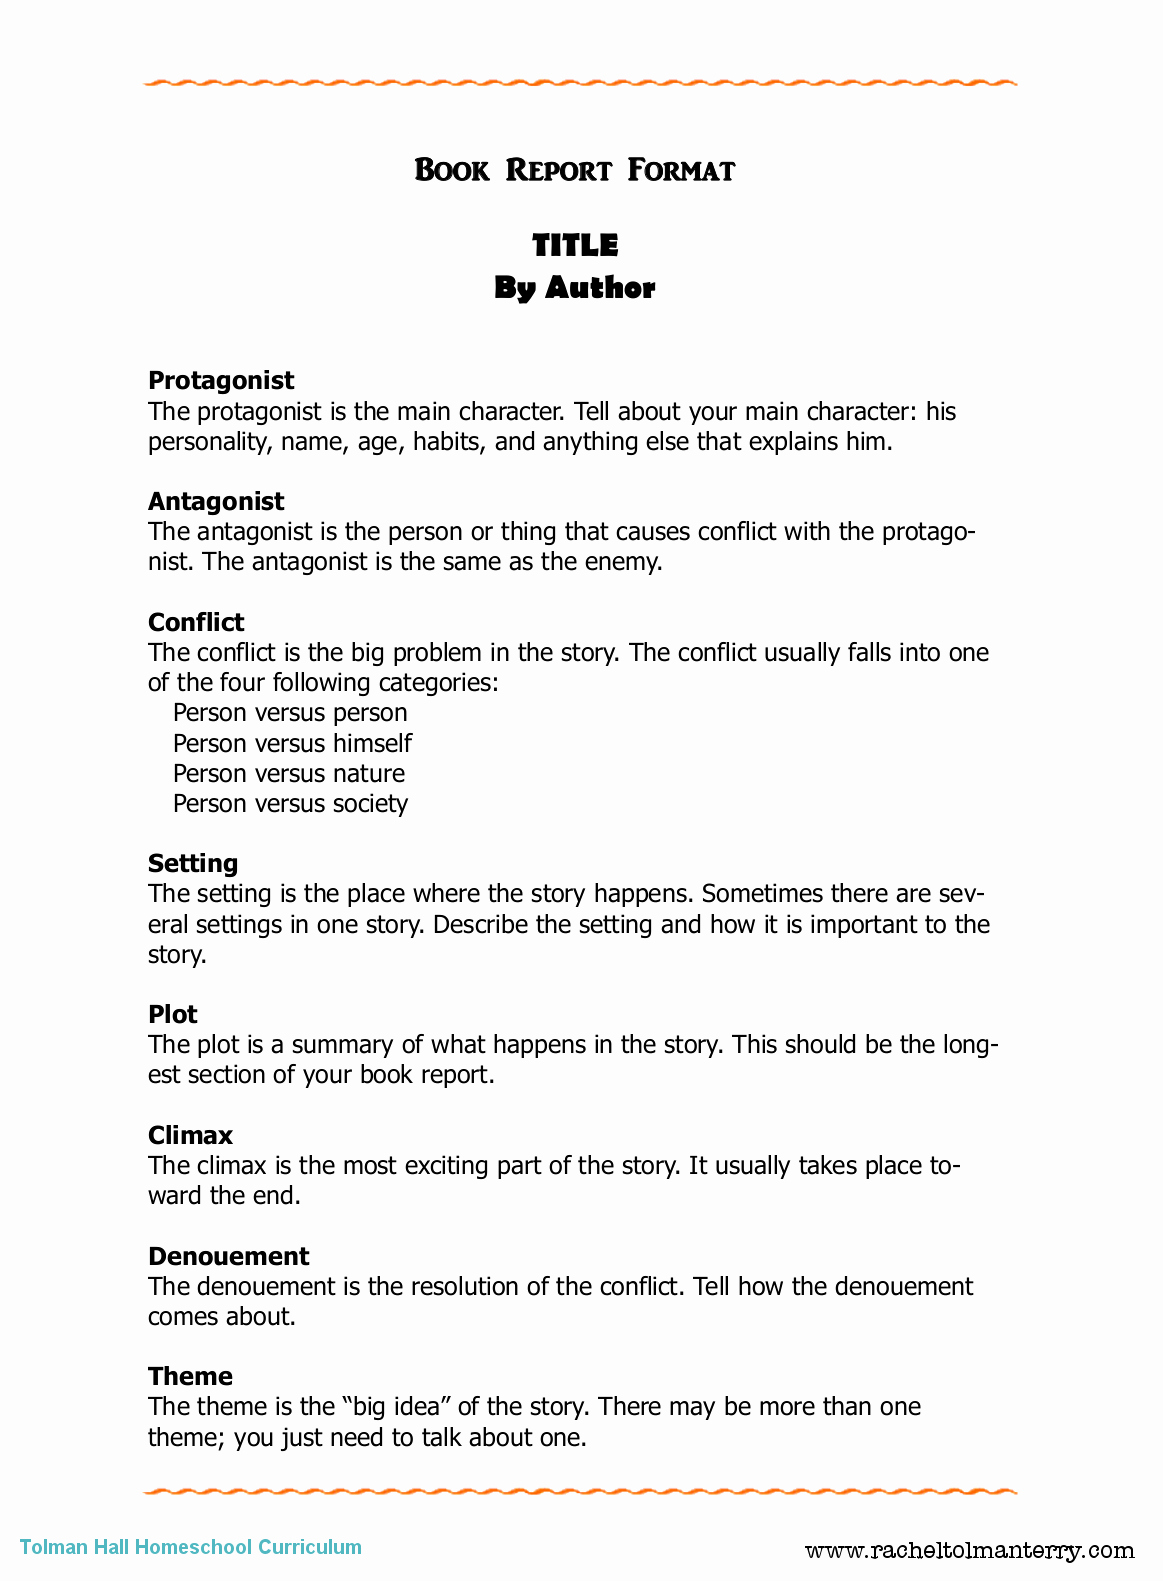 Book Analysis format Sample Elegant Book Report format Can Be Used for Personal or assigned